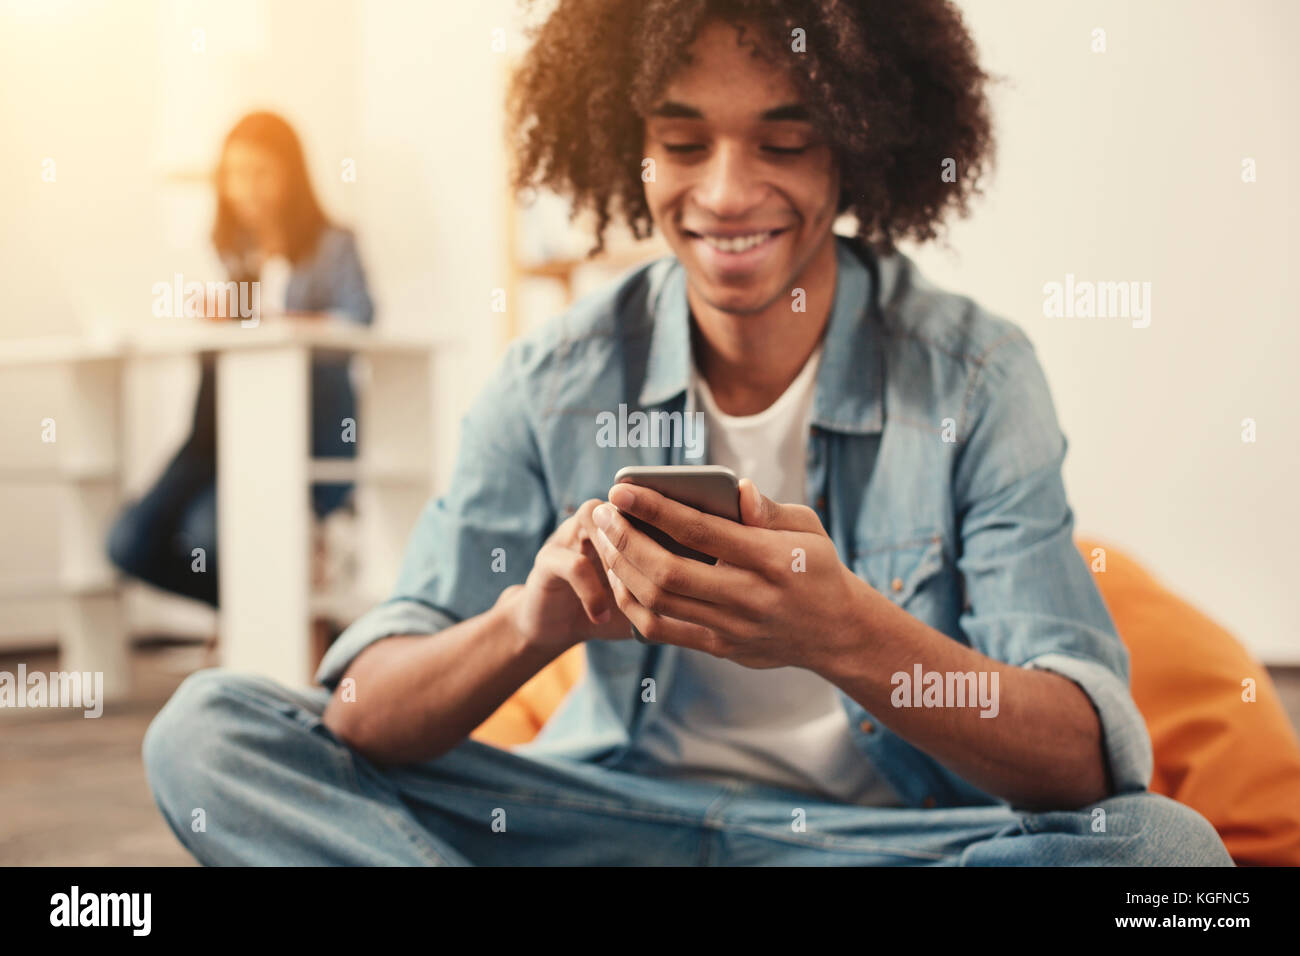 Cheerful student sitting in a comfortable beanbag chair and holding a smartphone - Stock Image